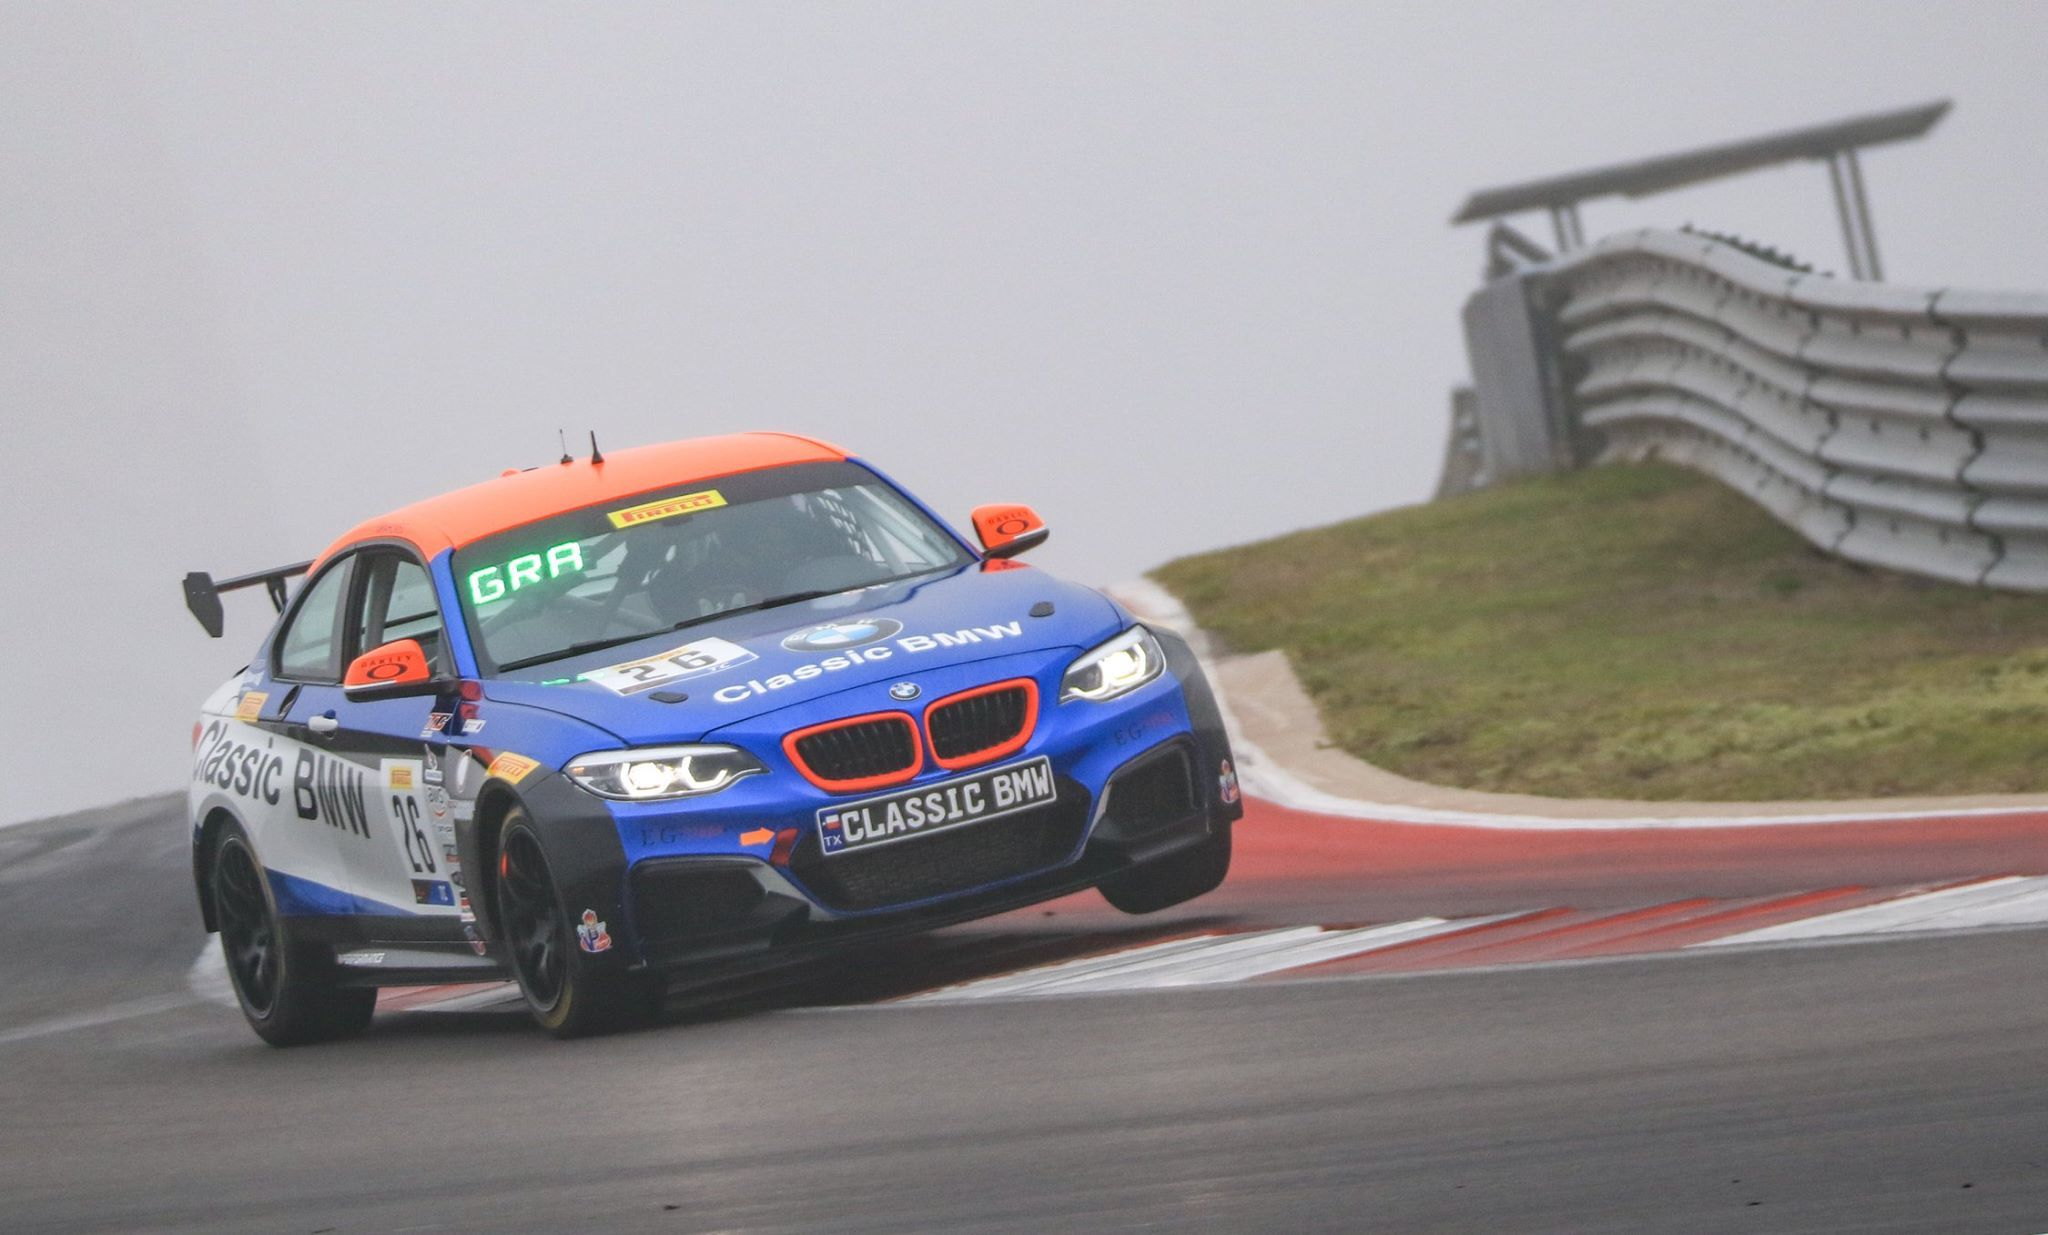 Fast Track Racing And Classic Bmw Pirelli Gt4 America Sprintx Lineup